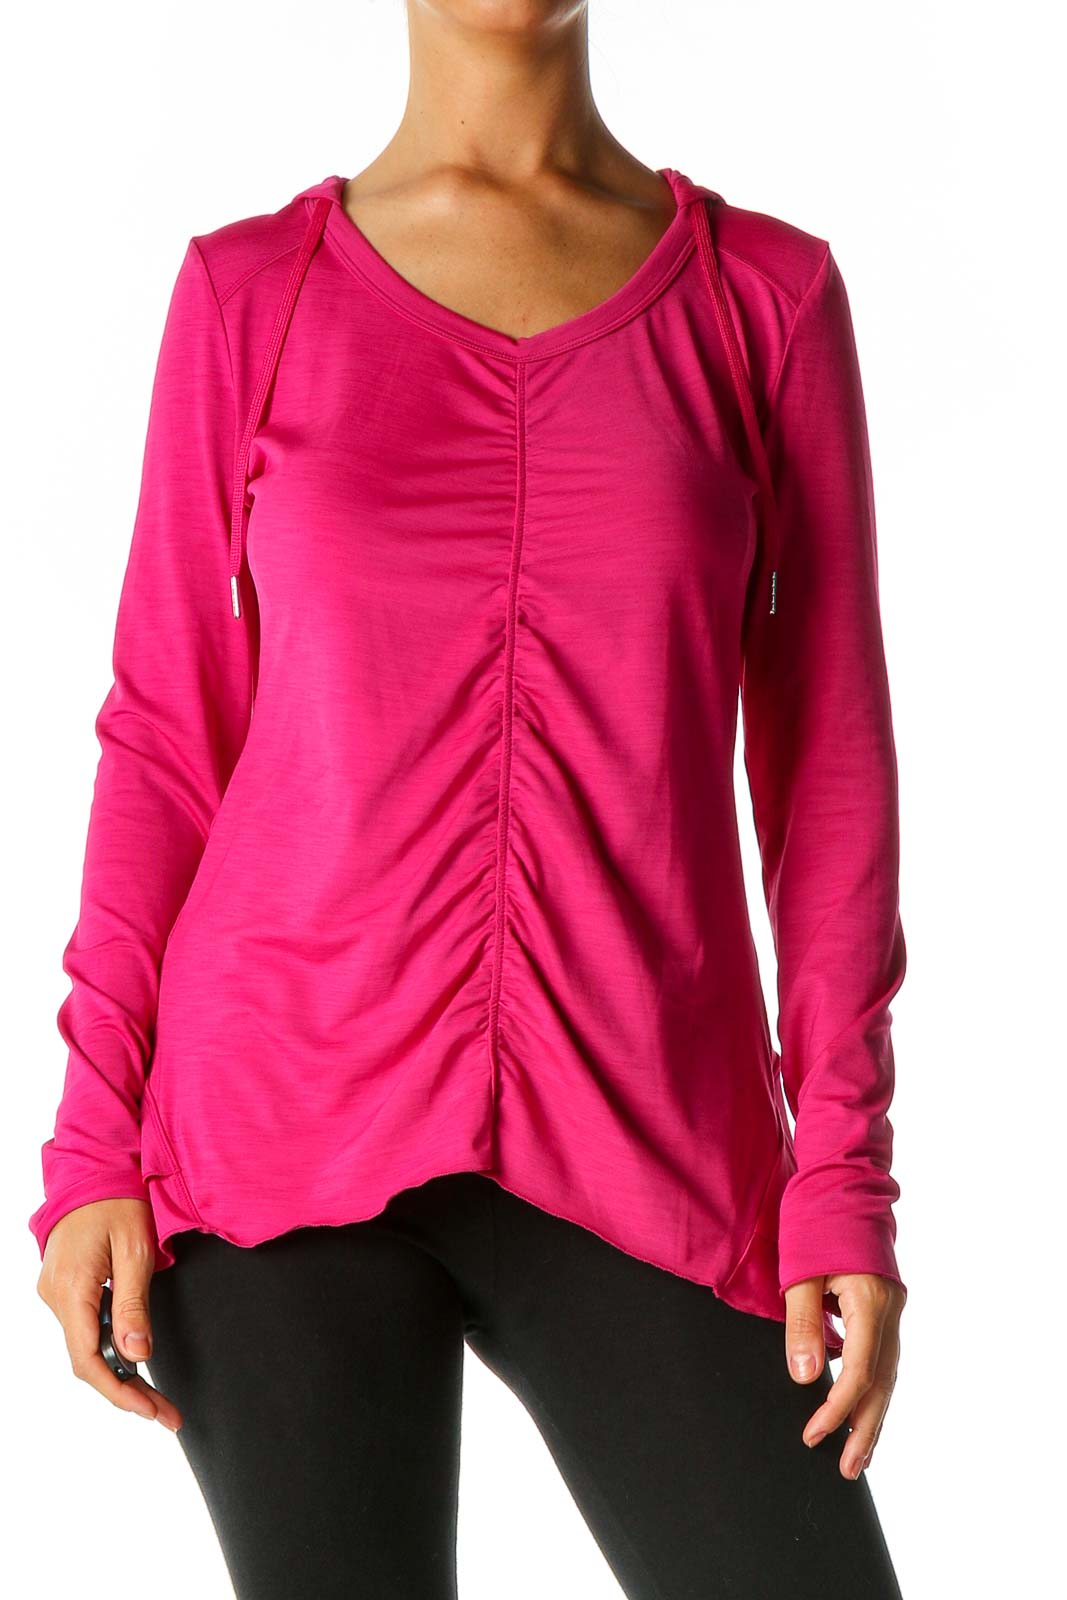 Pink Solid Activewear Top Front